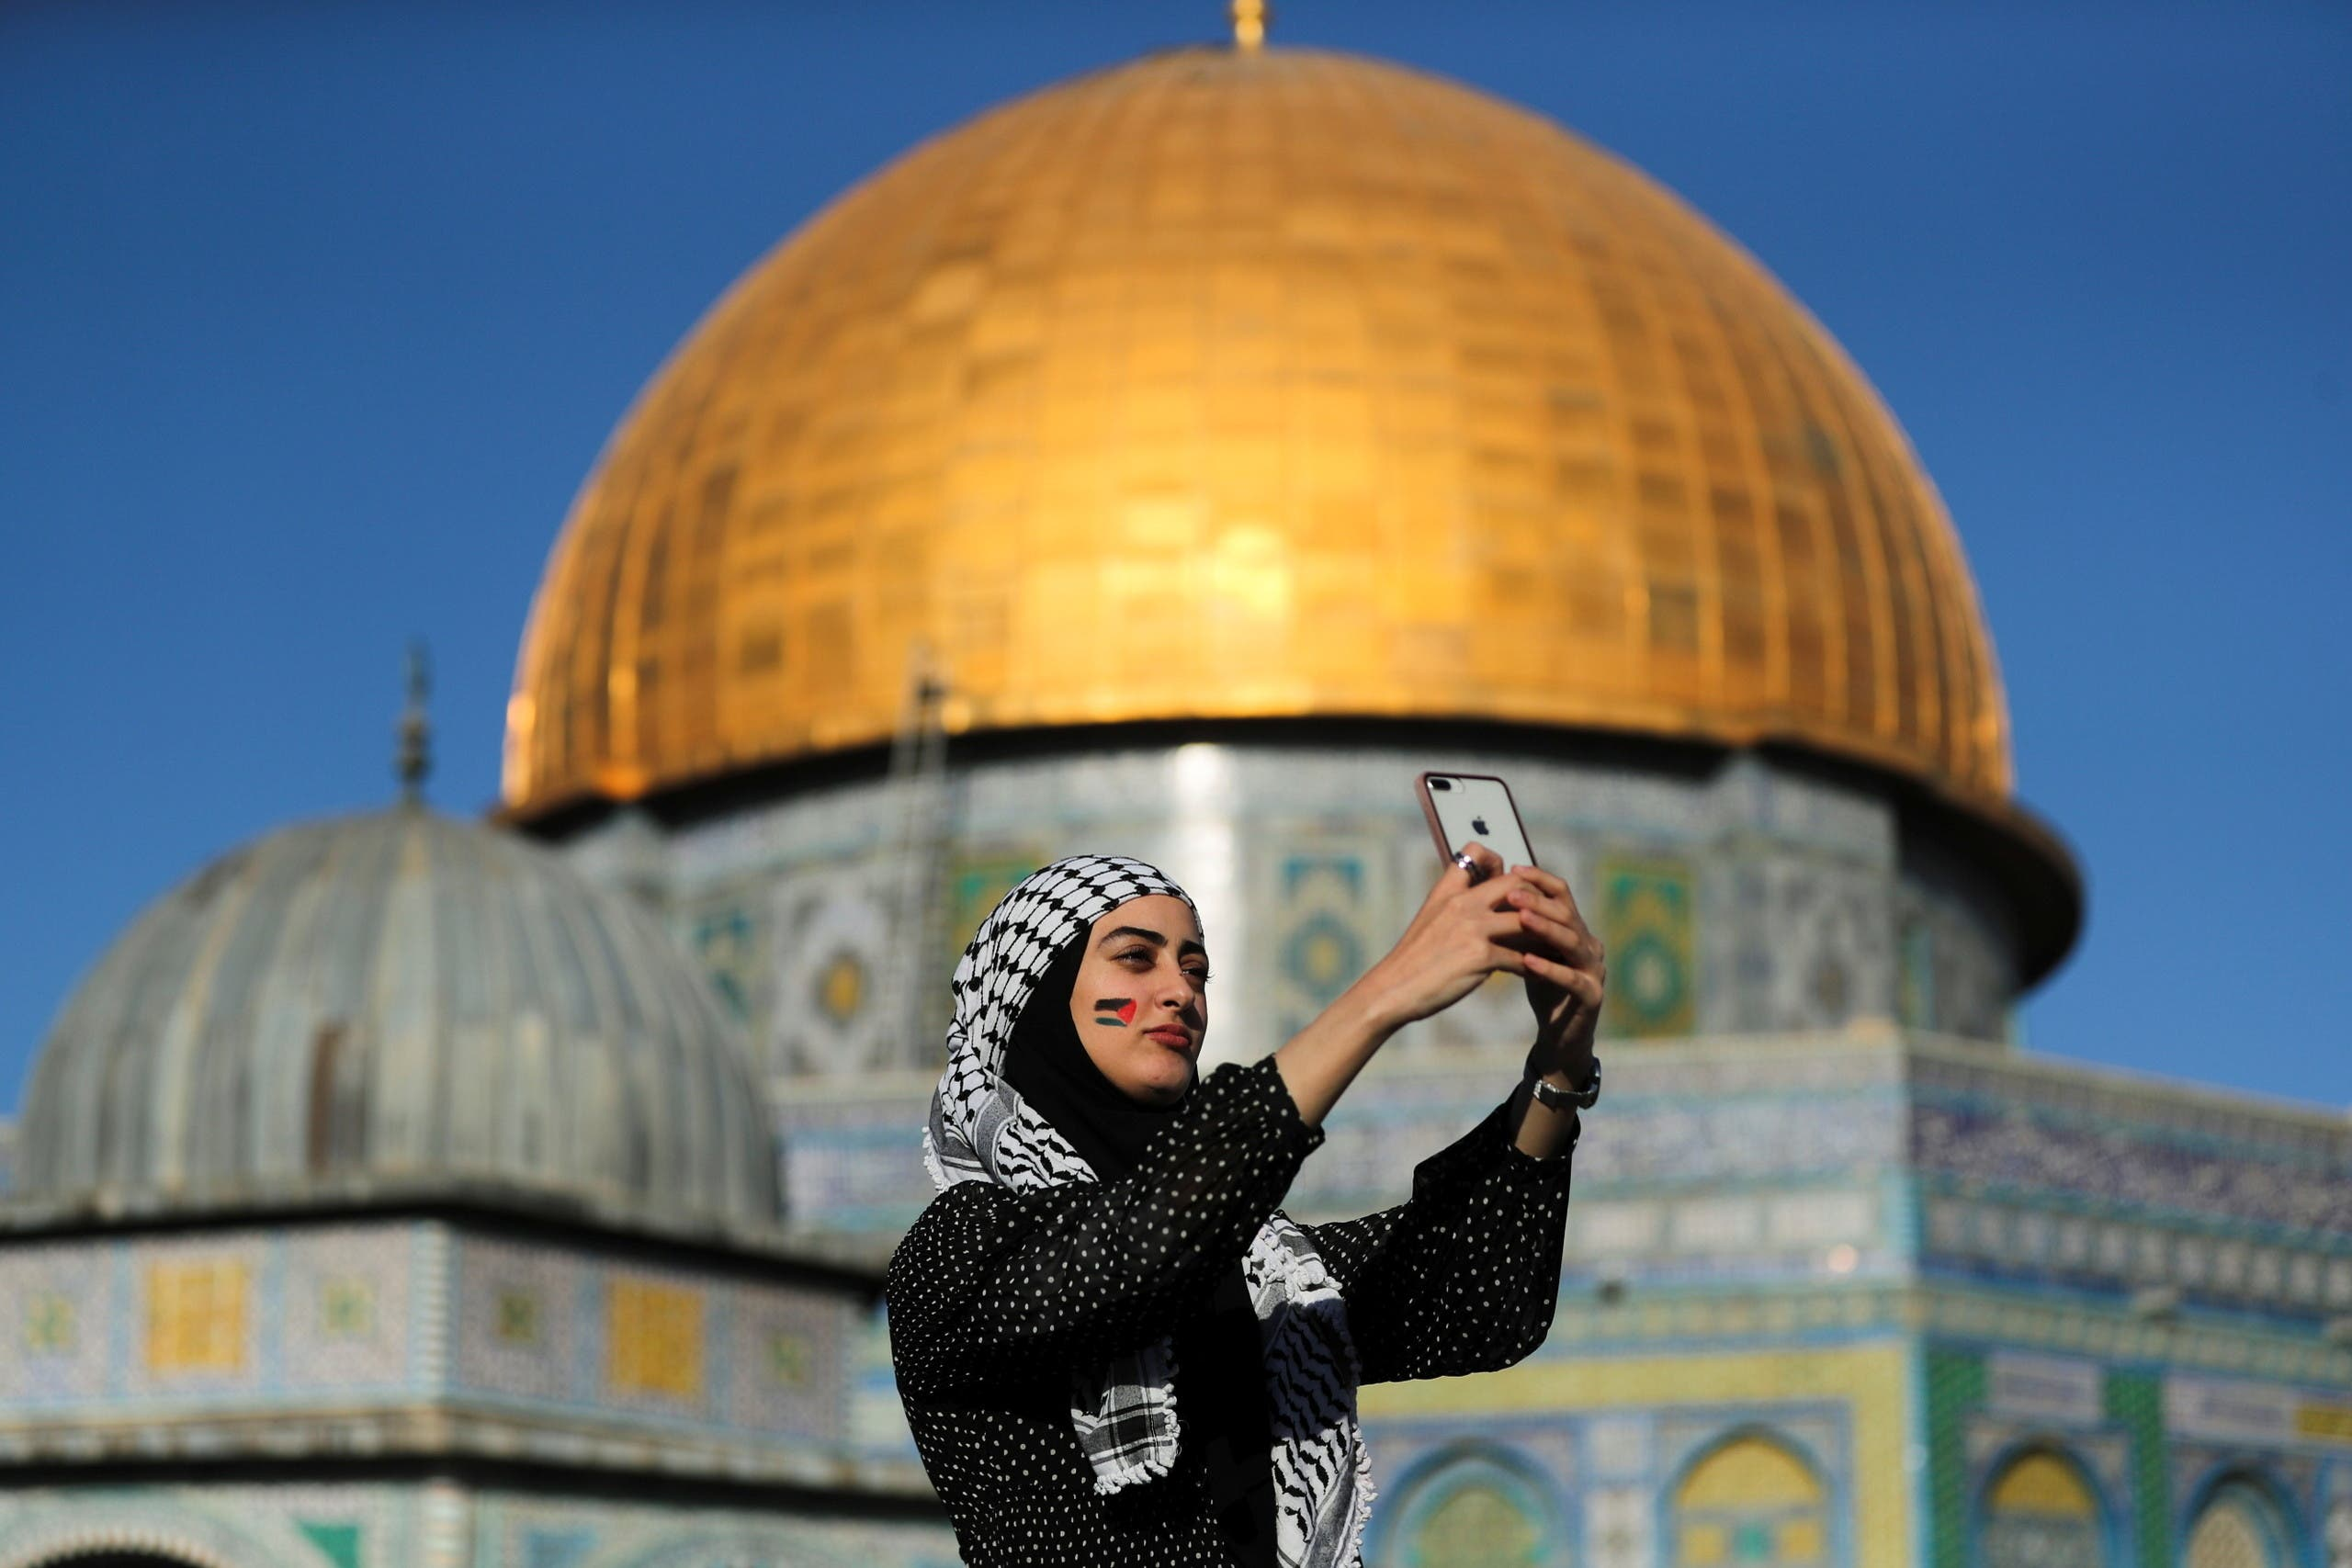 A Palestinian woman takes a selfie as the Dome of the Rock is seen in the background, during Eid al-Fitr prayers on May 13, 2021. (Reuters)